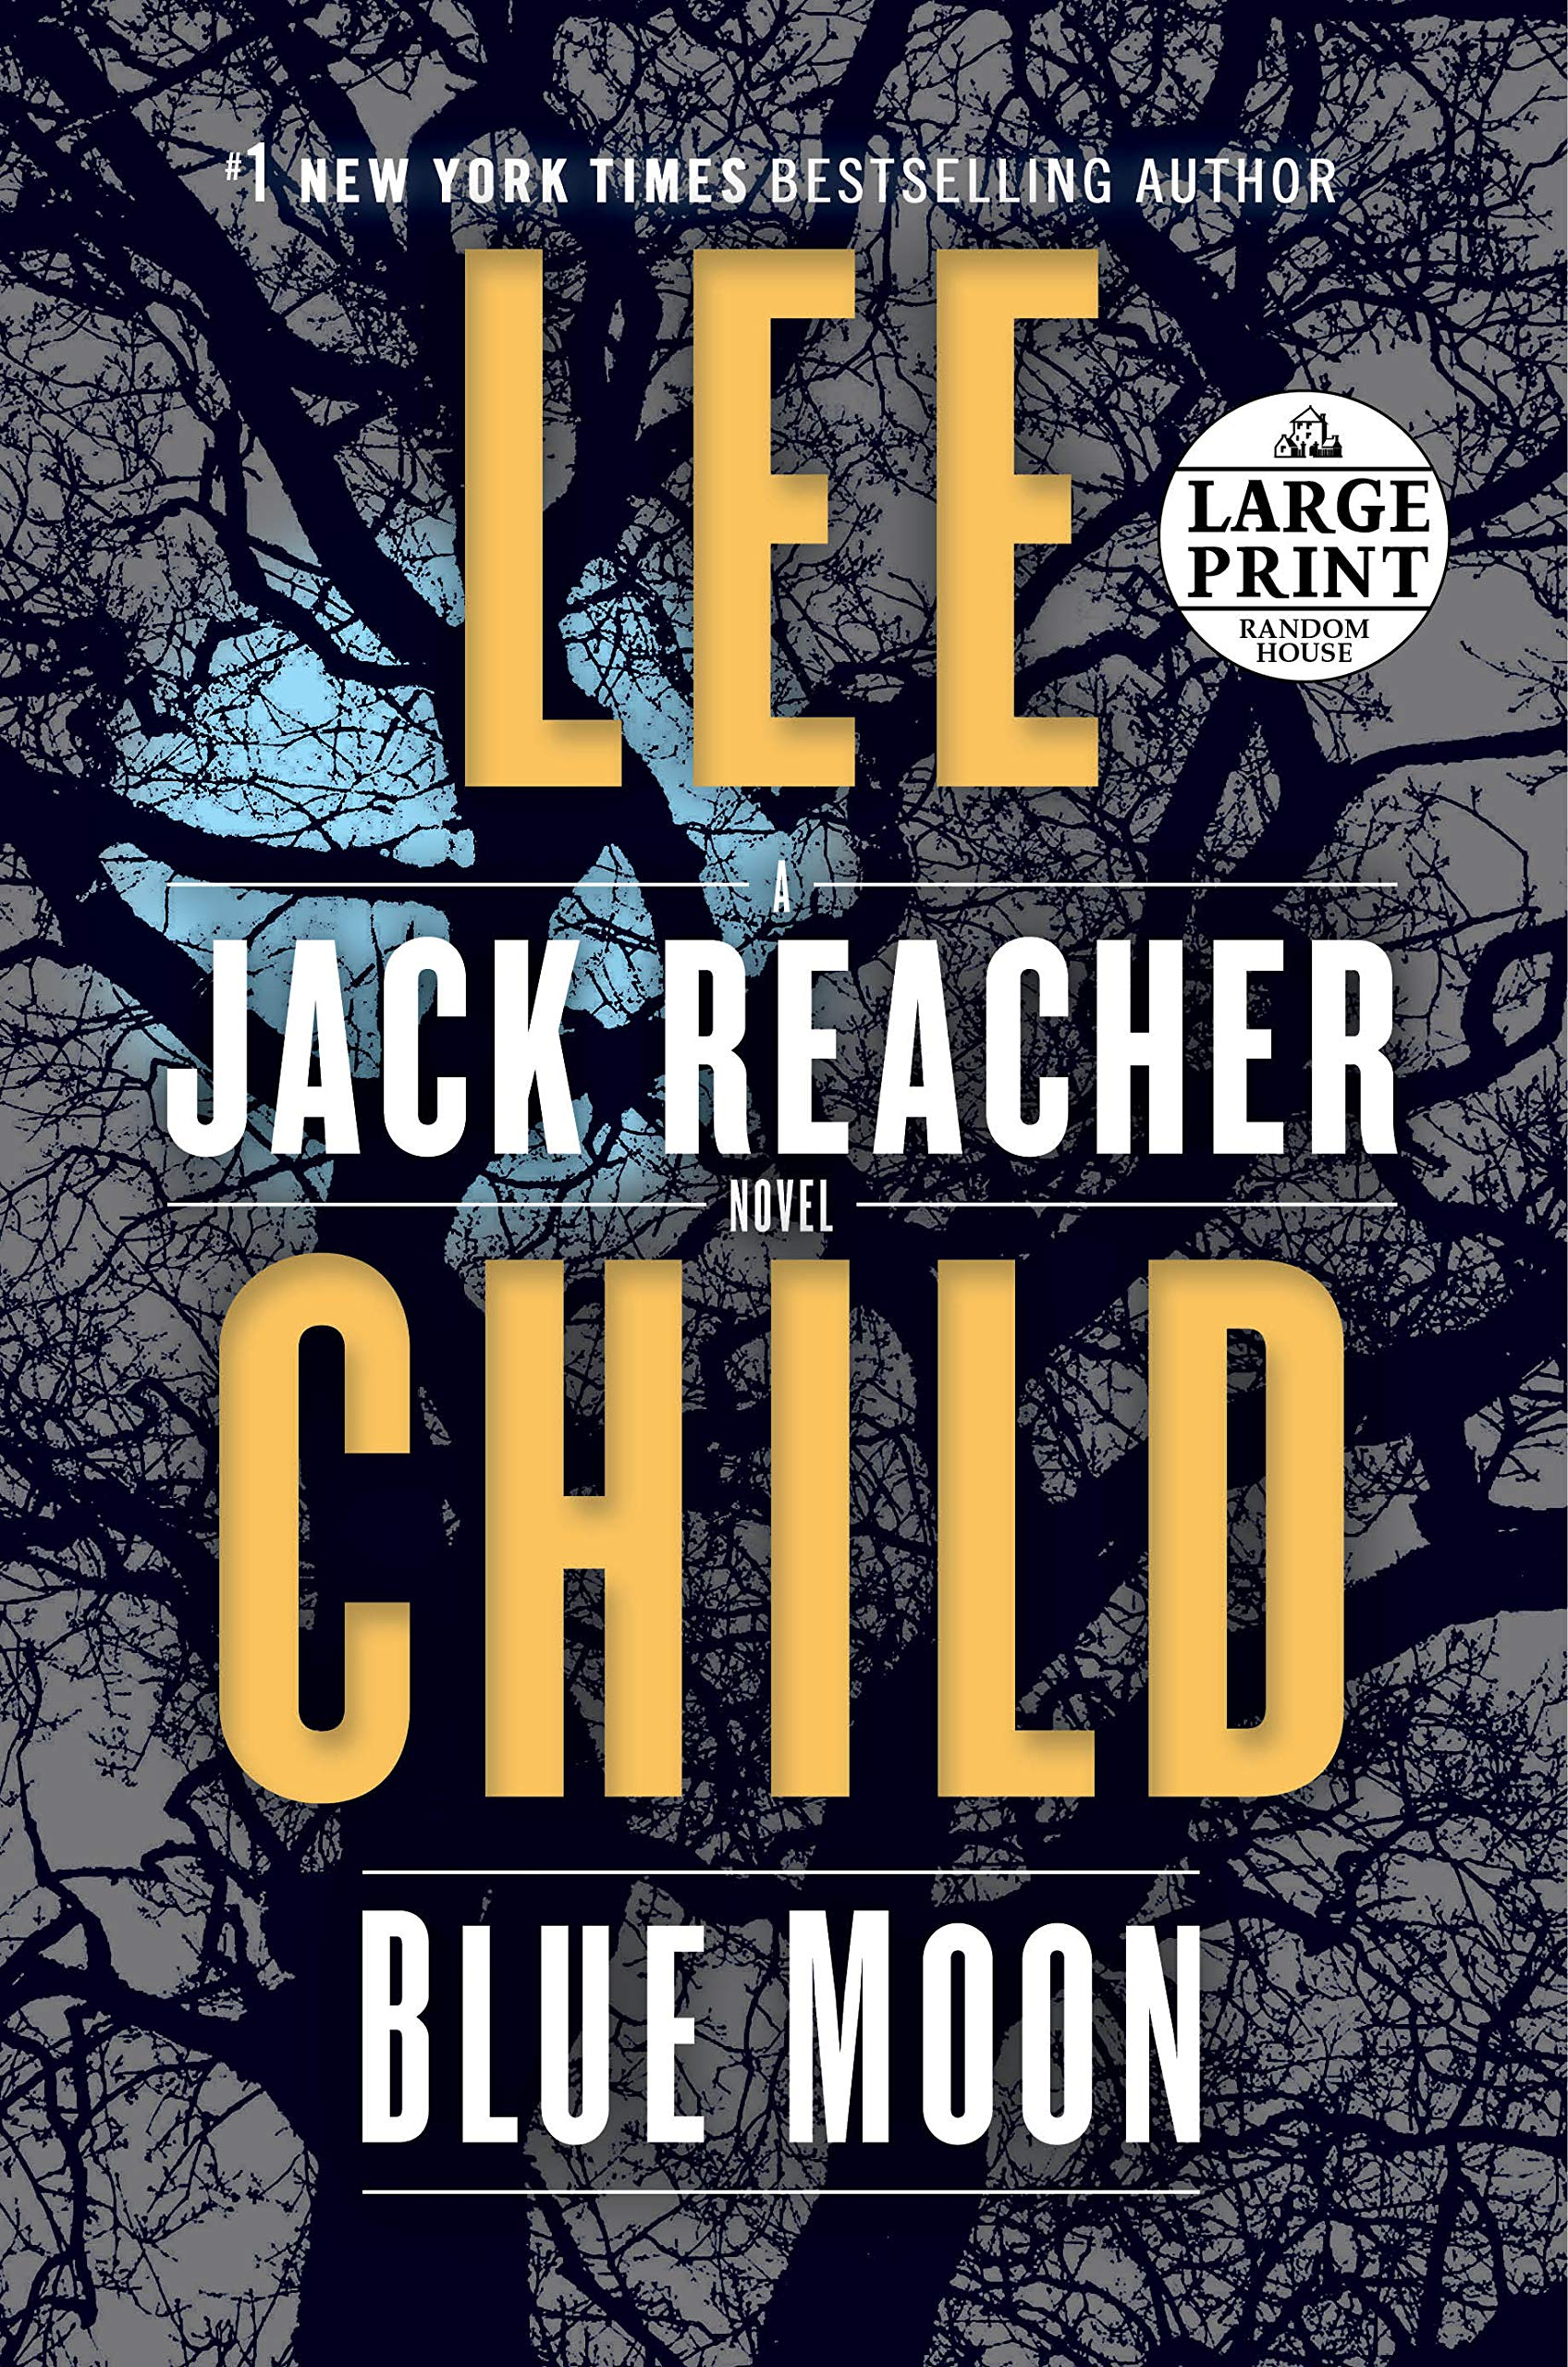 jack reacher order to read